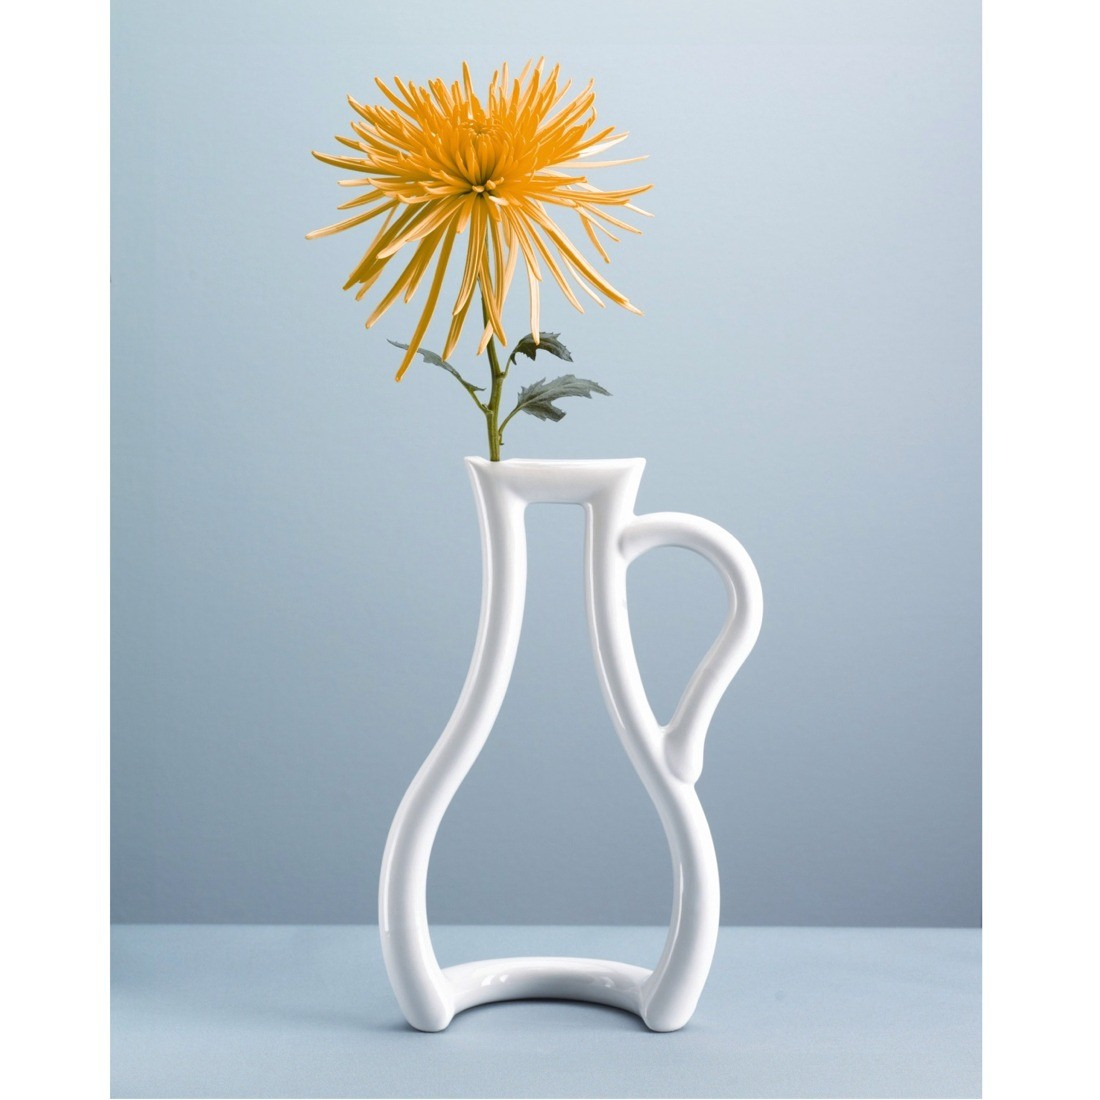 Unique Flower Vases Outline Vase From Mocha